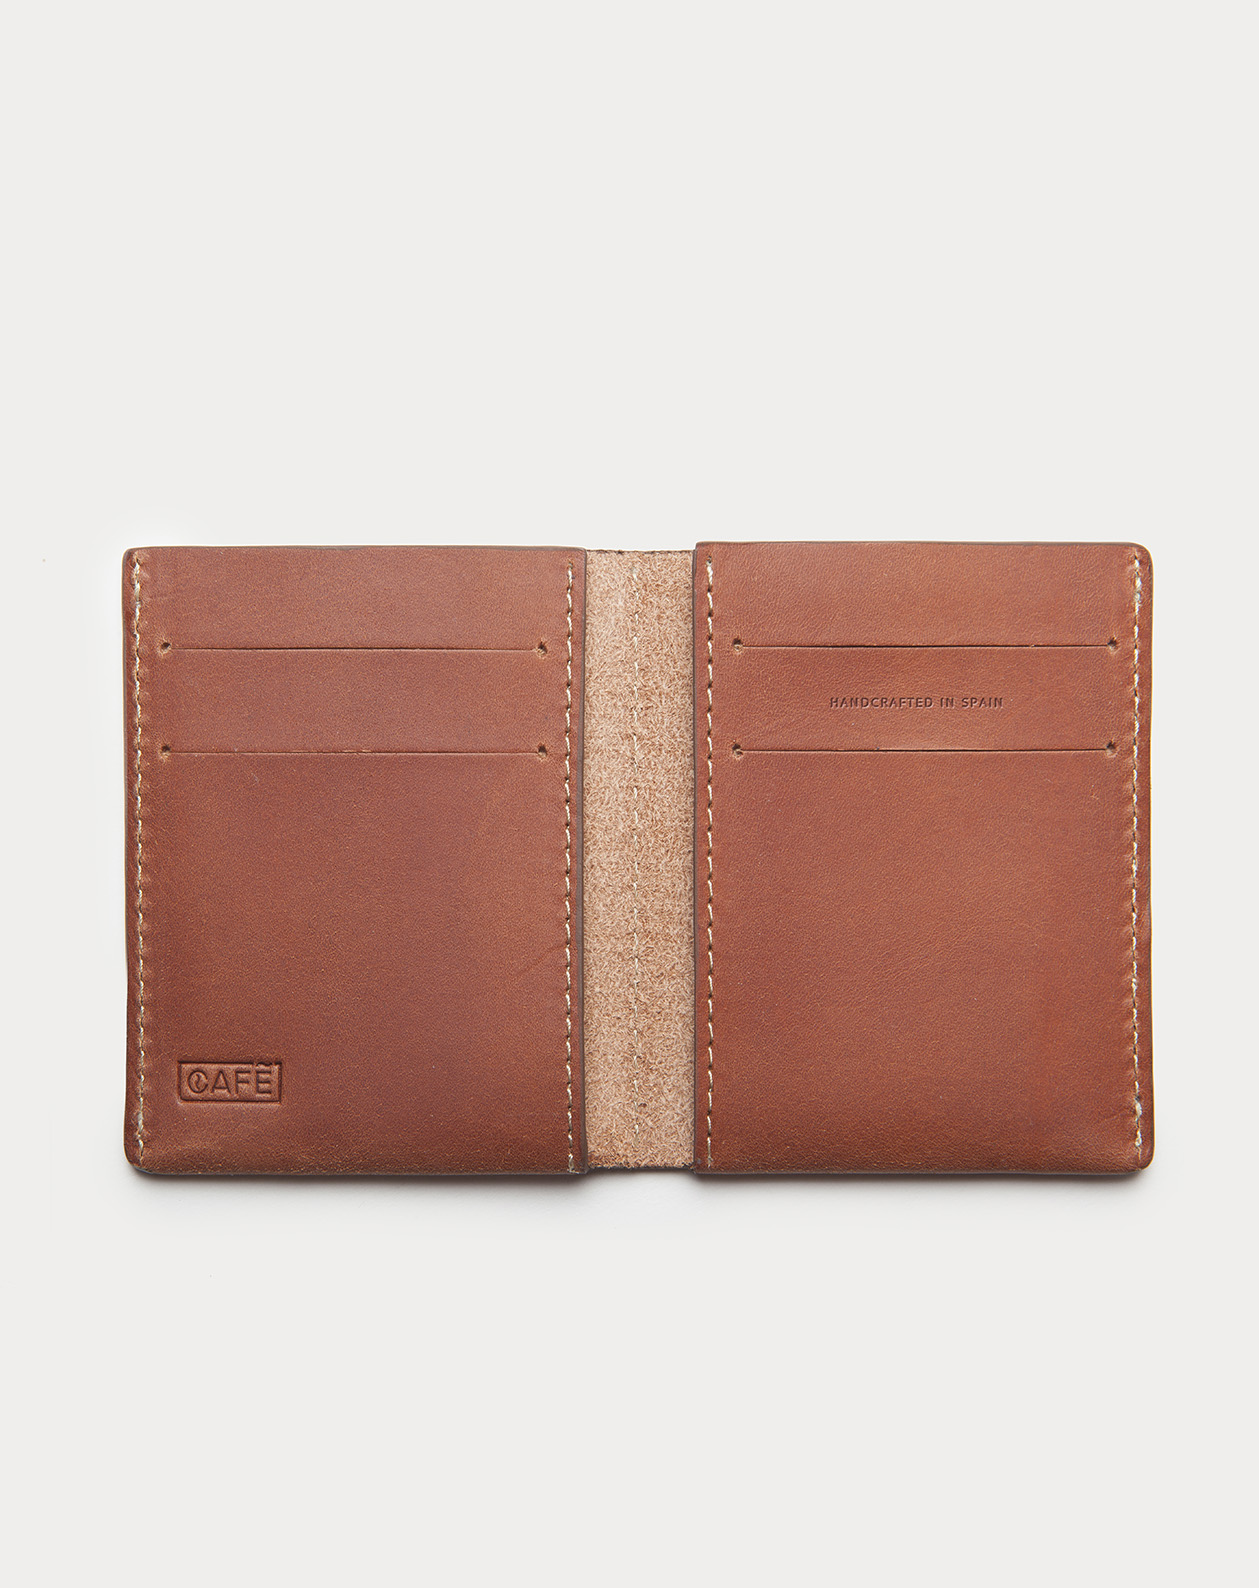 slim wallet brown for cards and bills